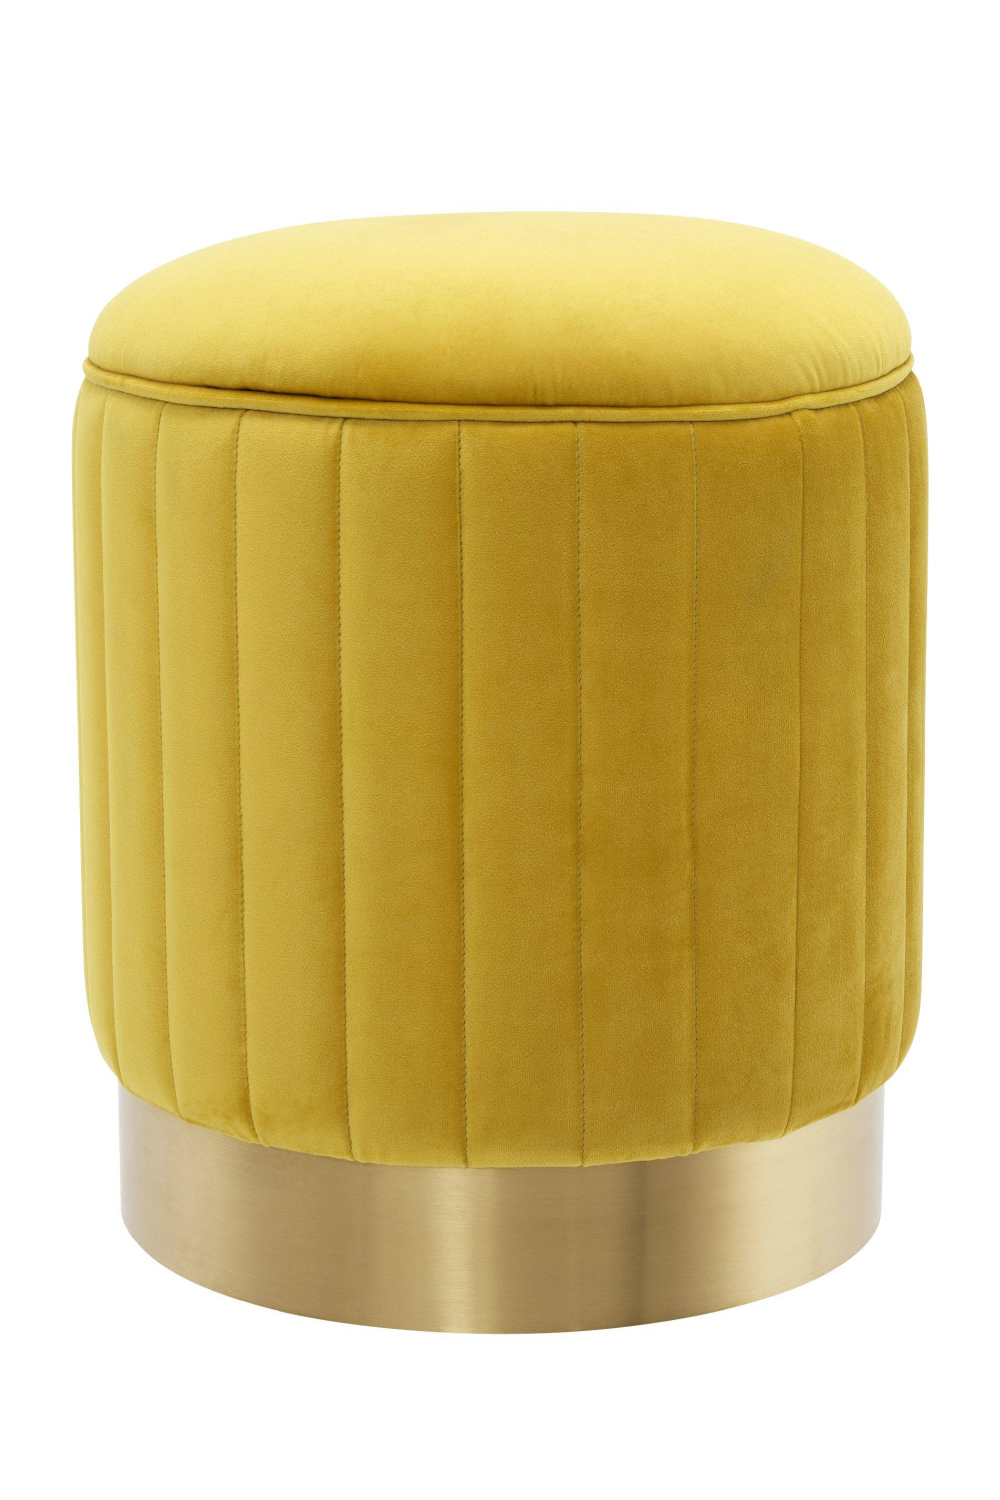 Yellow Gold Base Stool | Eichholtz Allegra | #1 Eichholtz Online Retailer